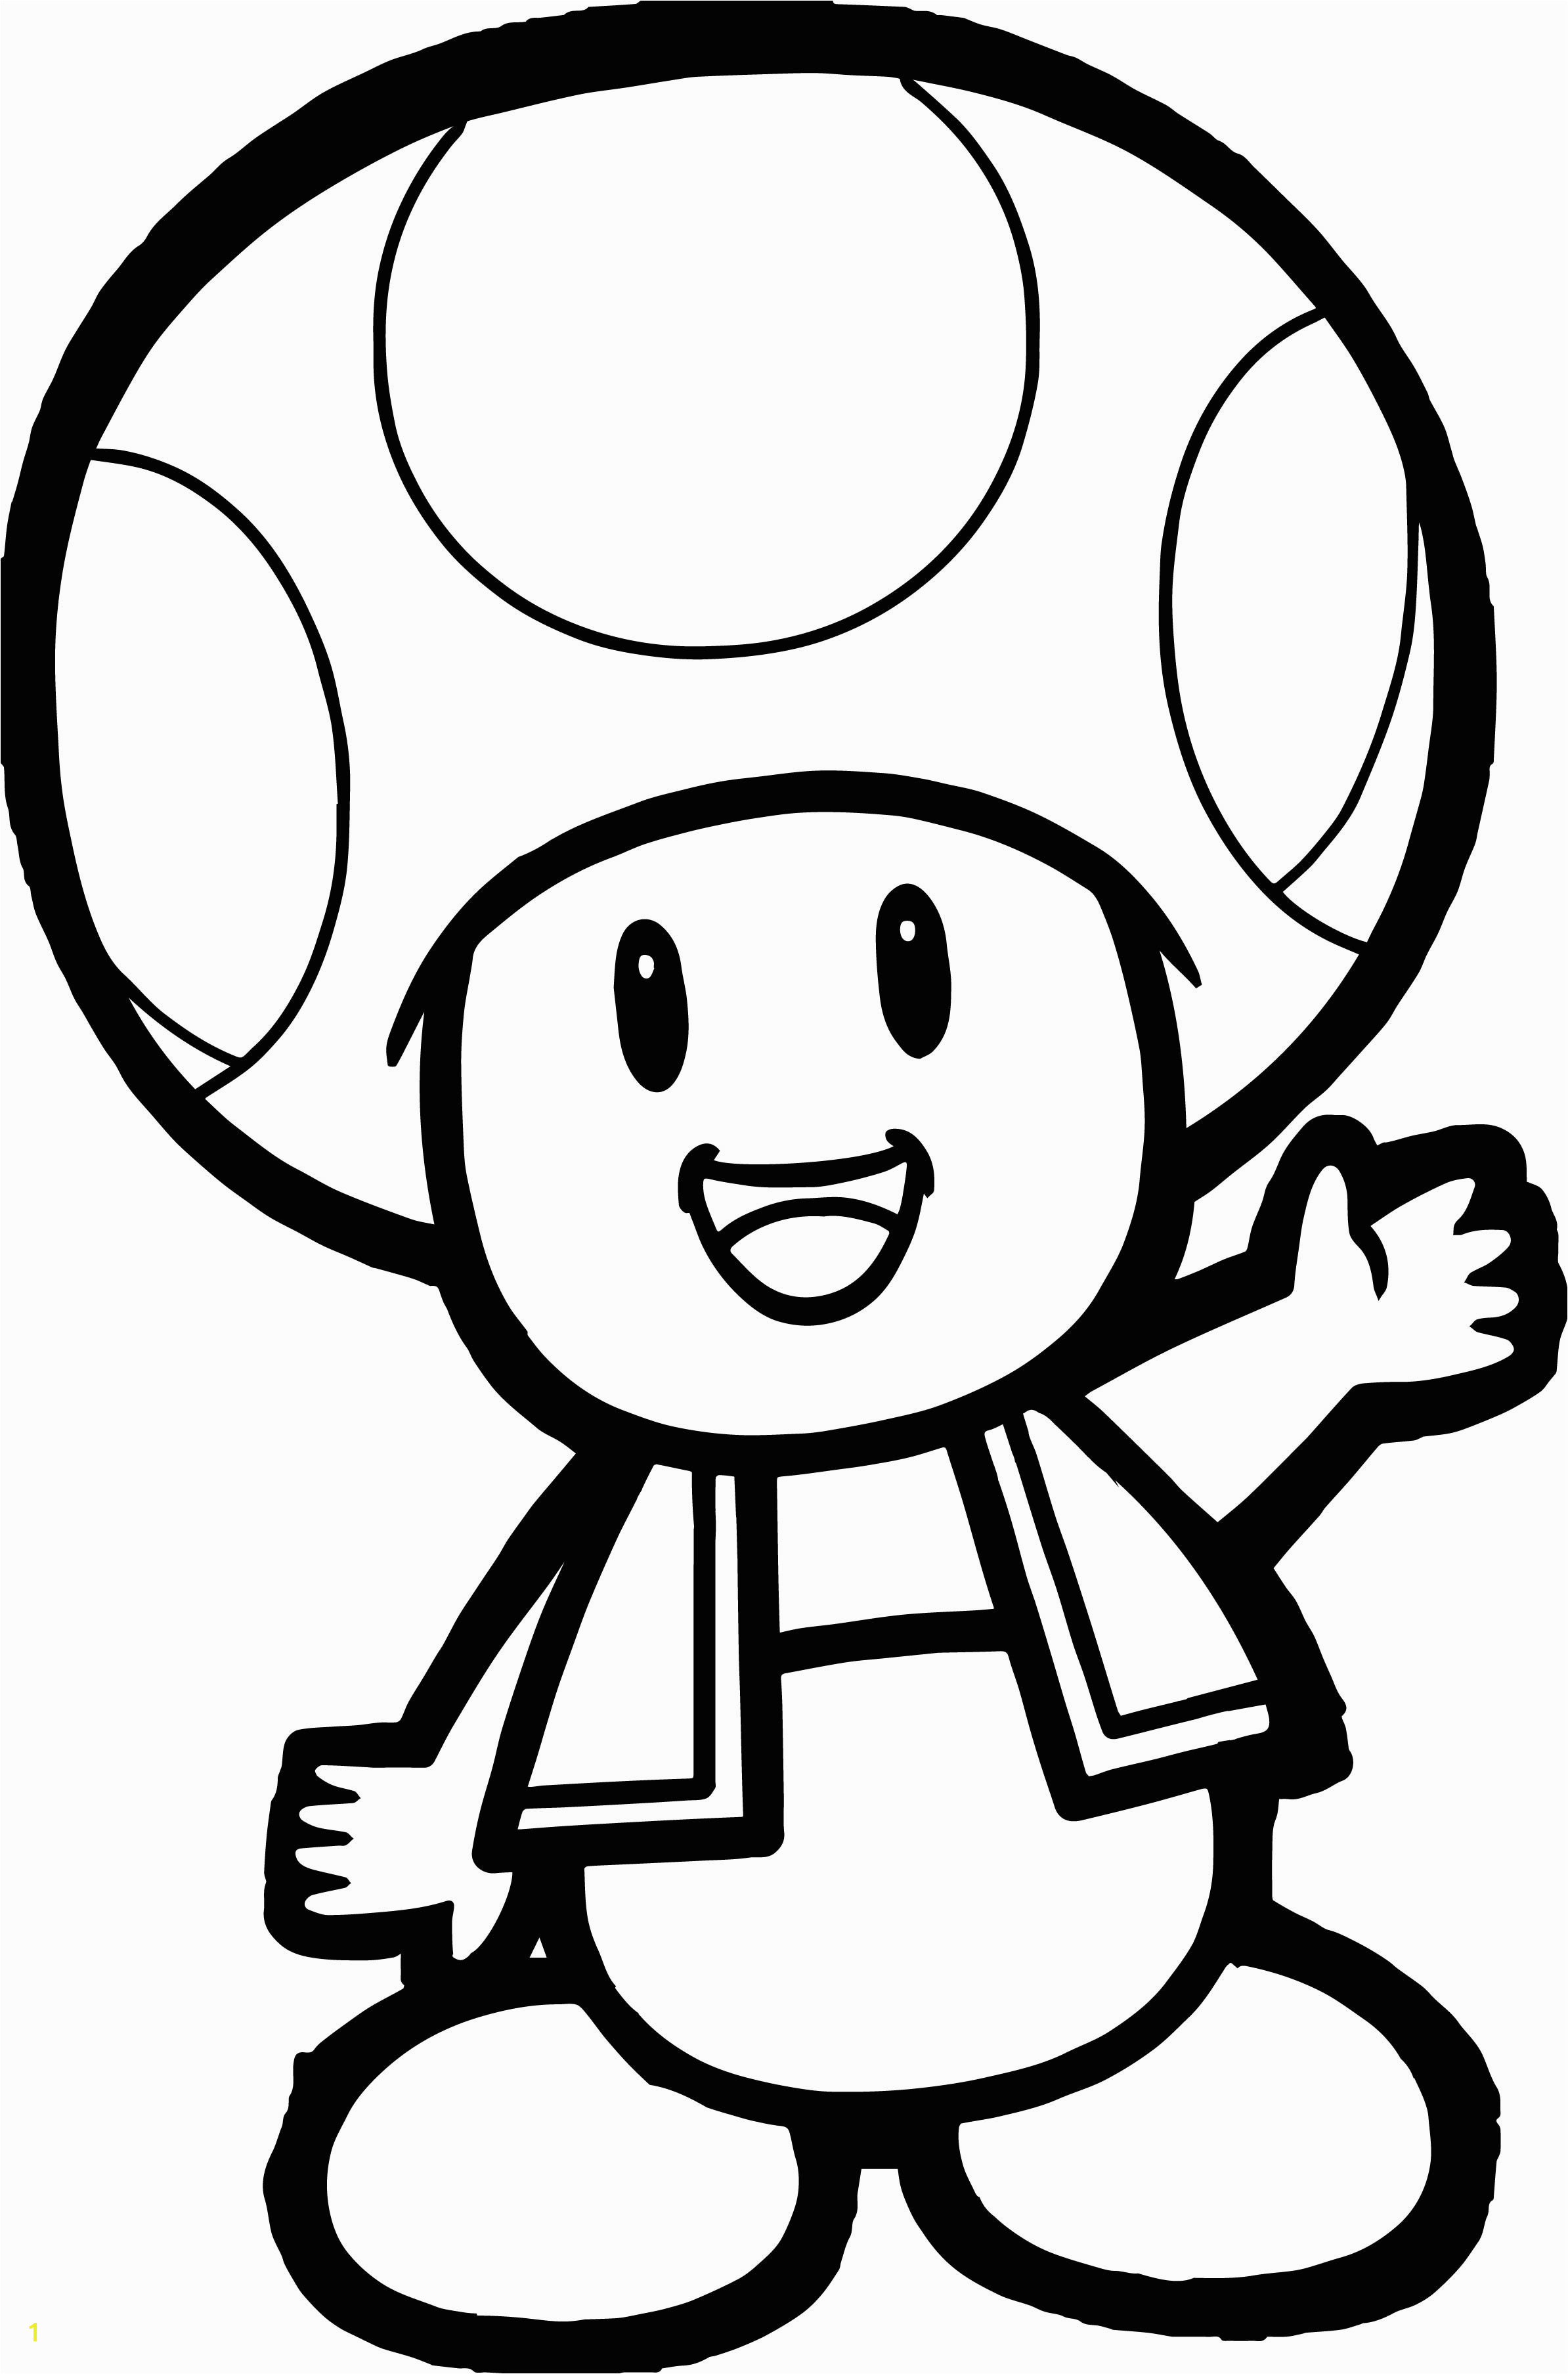 Toad and toadette Coloring Pages